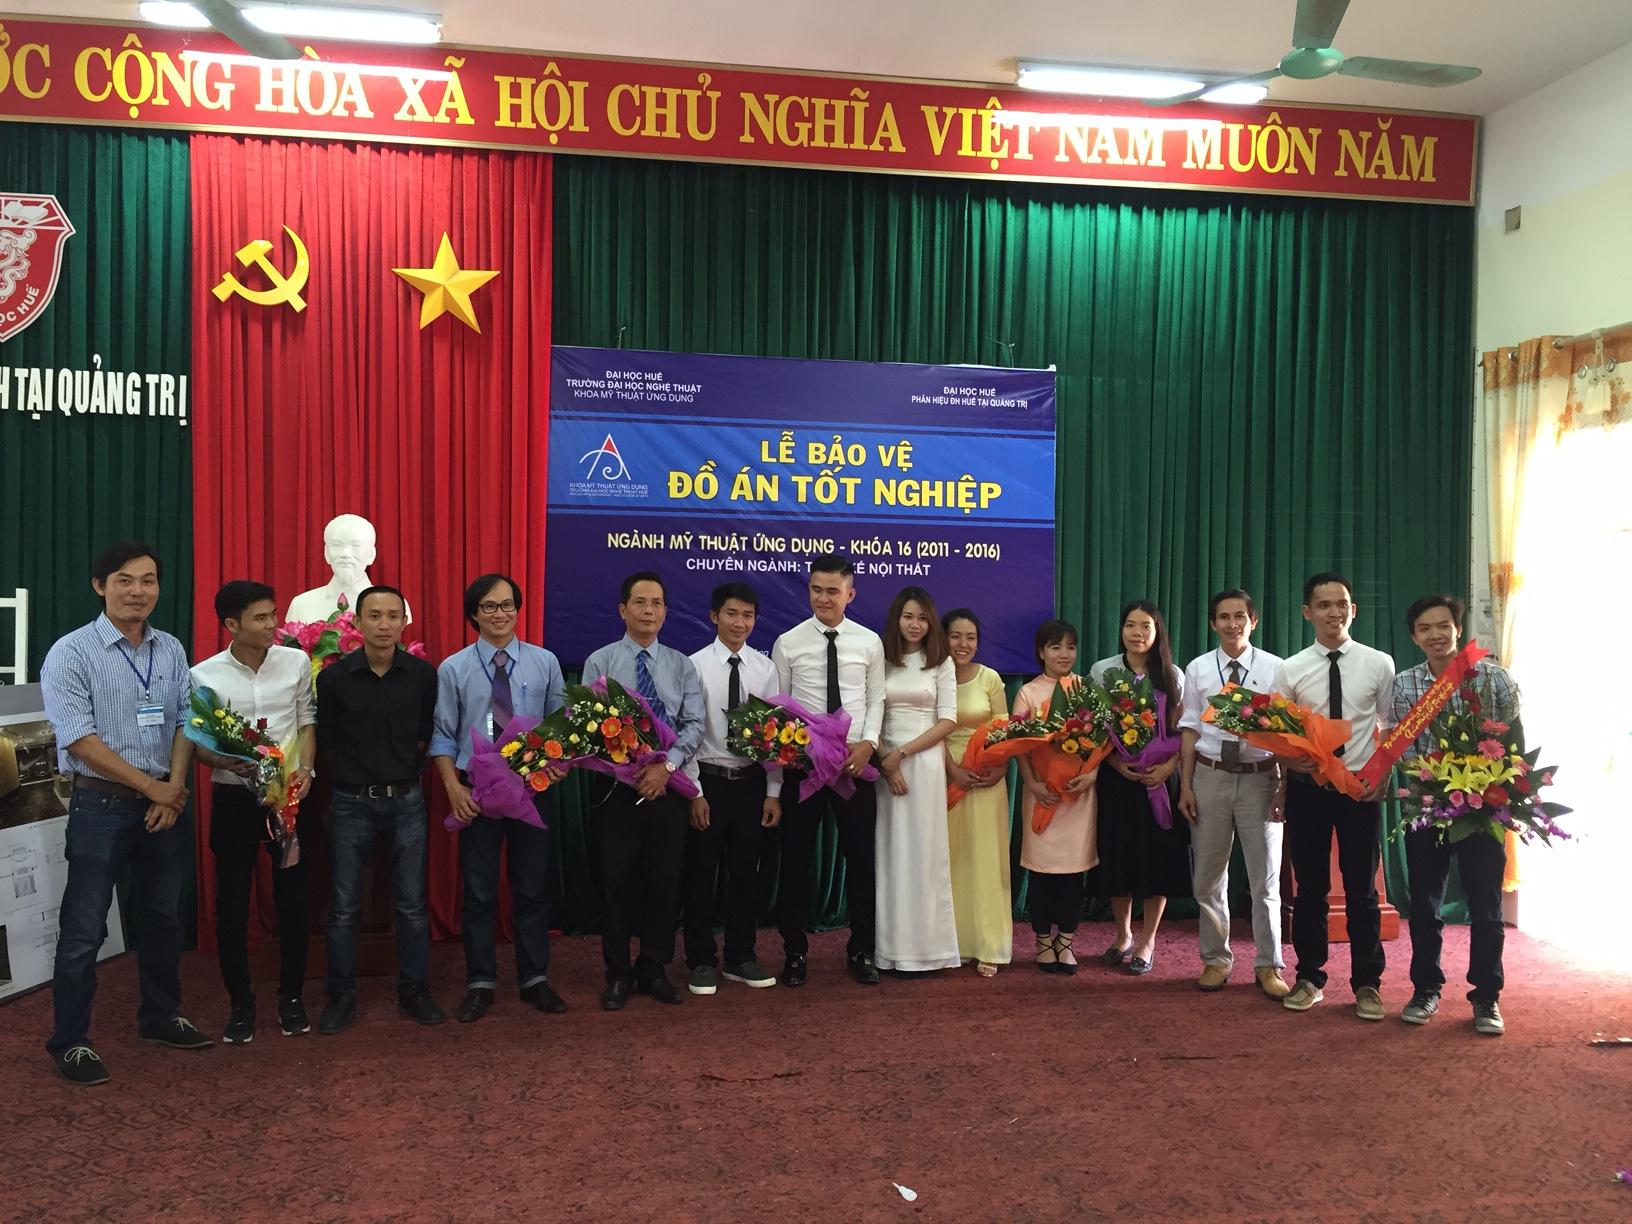 to-chuc-thanh-cong-le-bao-ve-do-an-tot-nghiep-nganh-my-thuat-ung-dung-k16